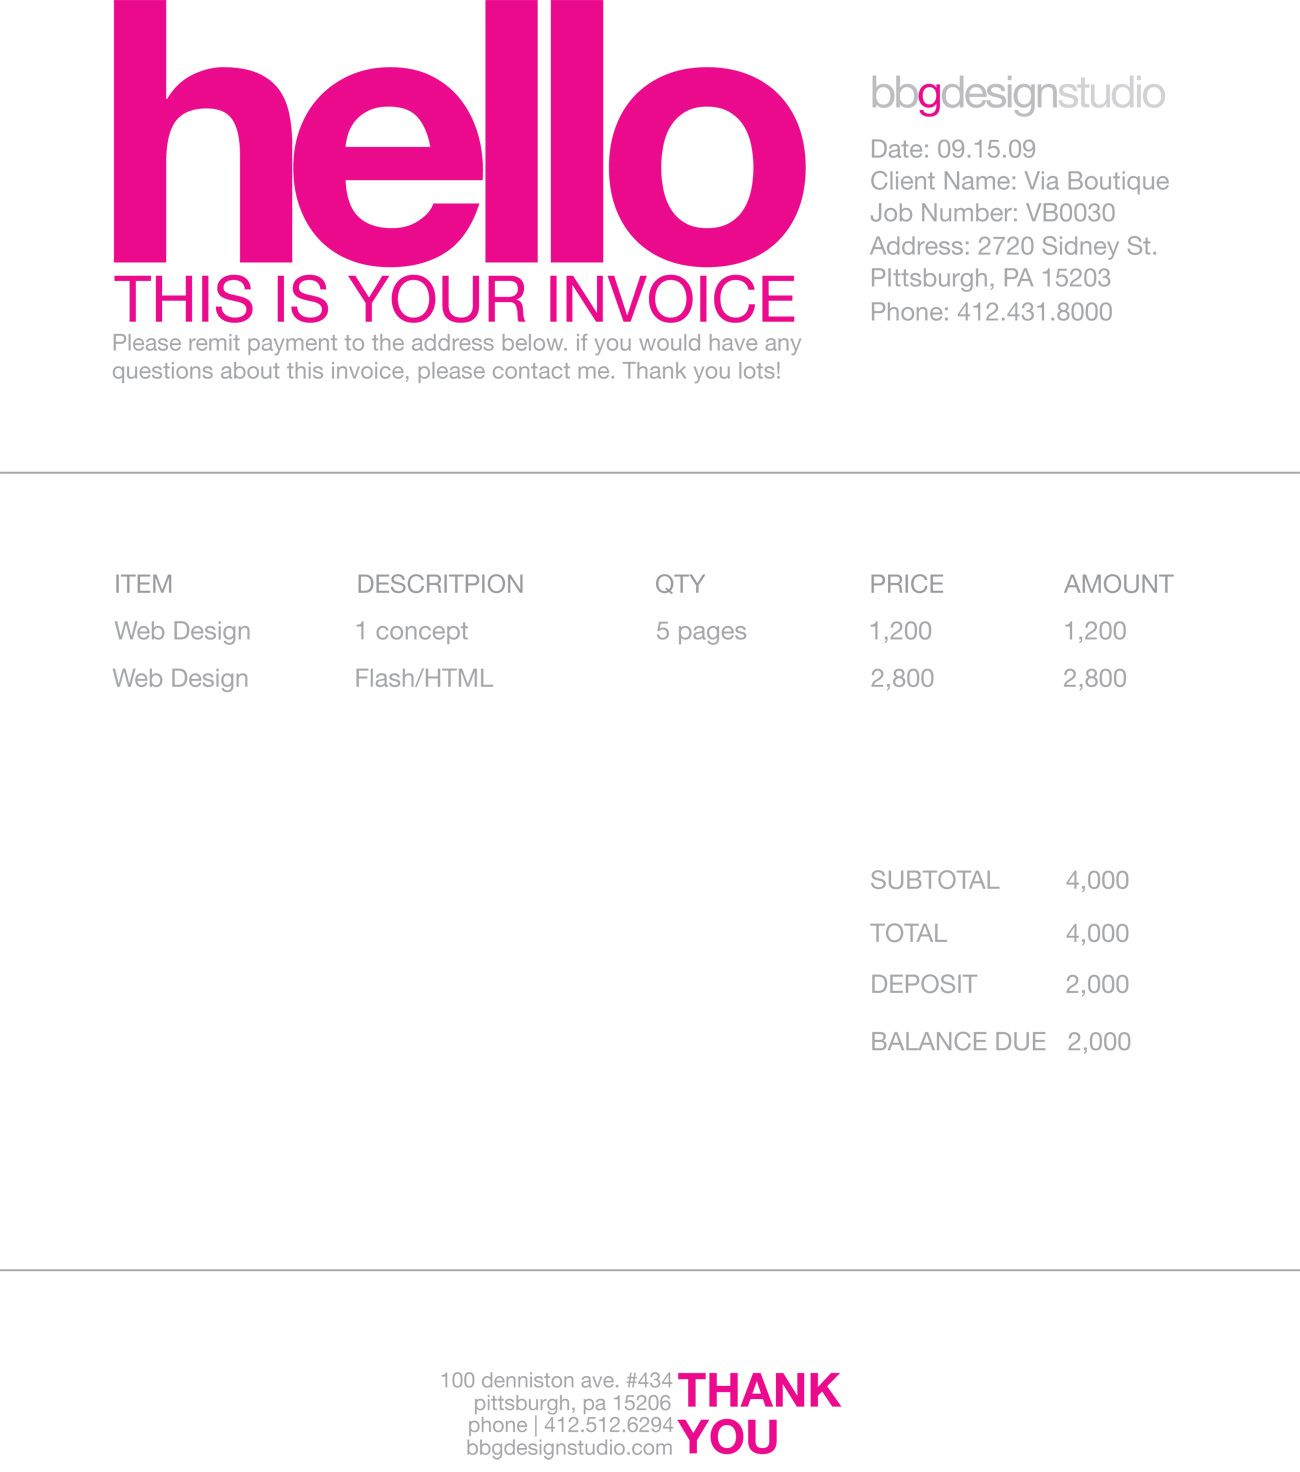 Reliefworkersus  Stunning  Images About Invoice Design On Pinterest With Great Child Support Receipt Besides Receipt Filer Furthermore Blank Rent Receipt With Adorable How To Send Certified Mail Return Receipt Requested Also Best Receipt Organizer In Addition Need A Receipt And Paid In Full Receipt As Well As Paypal Here Receipt Printer Additionally Toys R Us Receipt From Pinterestcom With Reliefworkersus  Great  Images About Invoice Design On Pinterest With Adorable Child Support Receipt Besides Receipt Filer Furthermore Blank Rent Receipt And Stunning How To Send Certified Mail Return Receipt Requested Also Best Receipt Organizer In Addition Need A Receipt From Pinterestcom